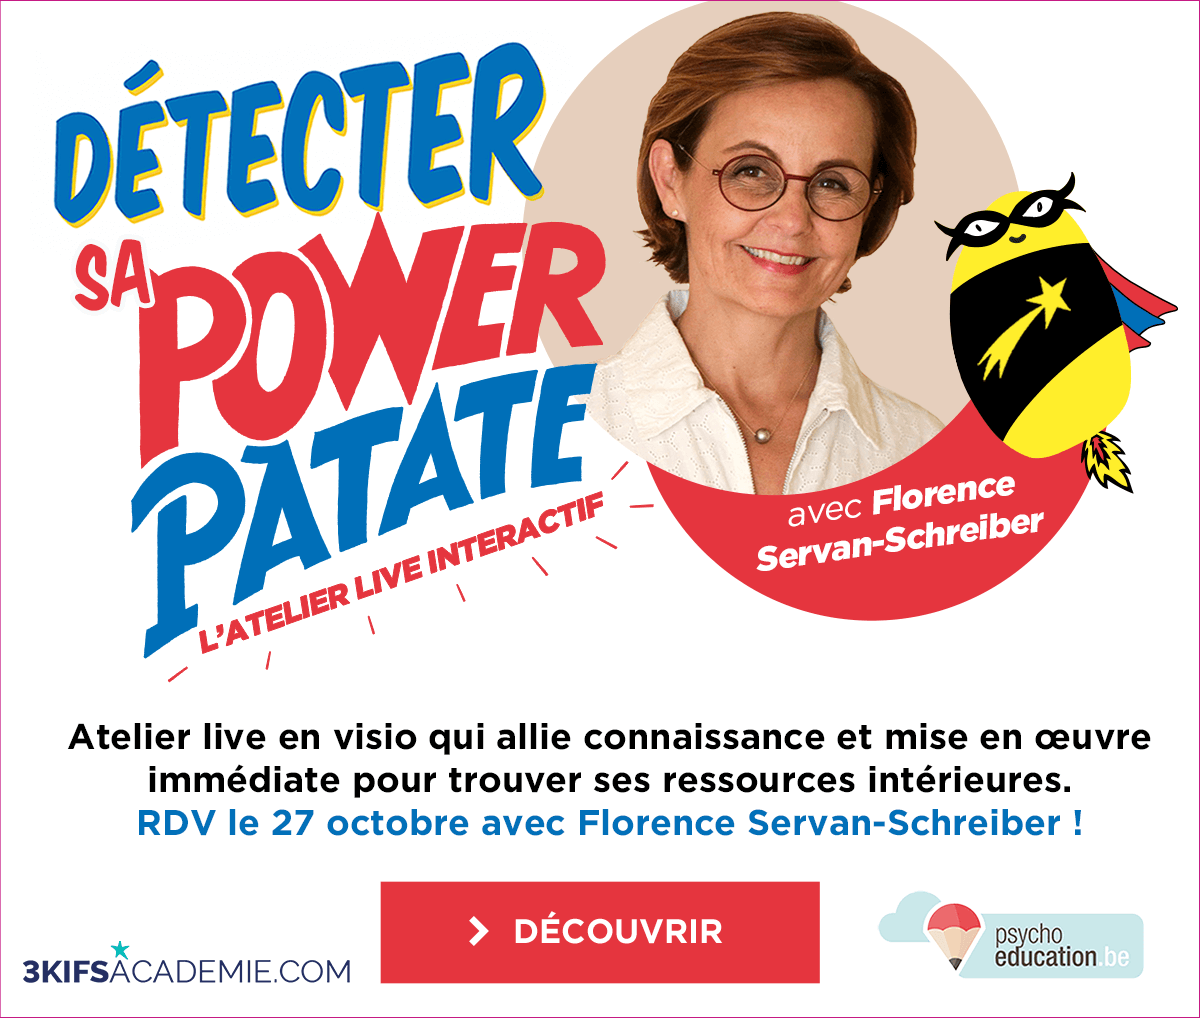 DÉTECTER SA POWER PATATE – L'ATELIER LIVE INTERACTIF